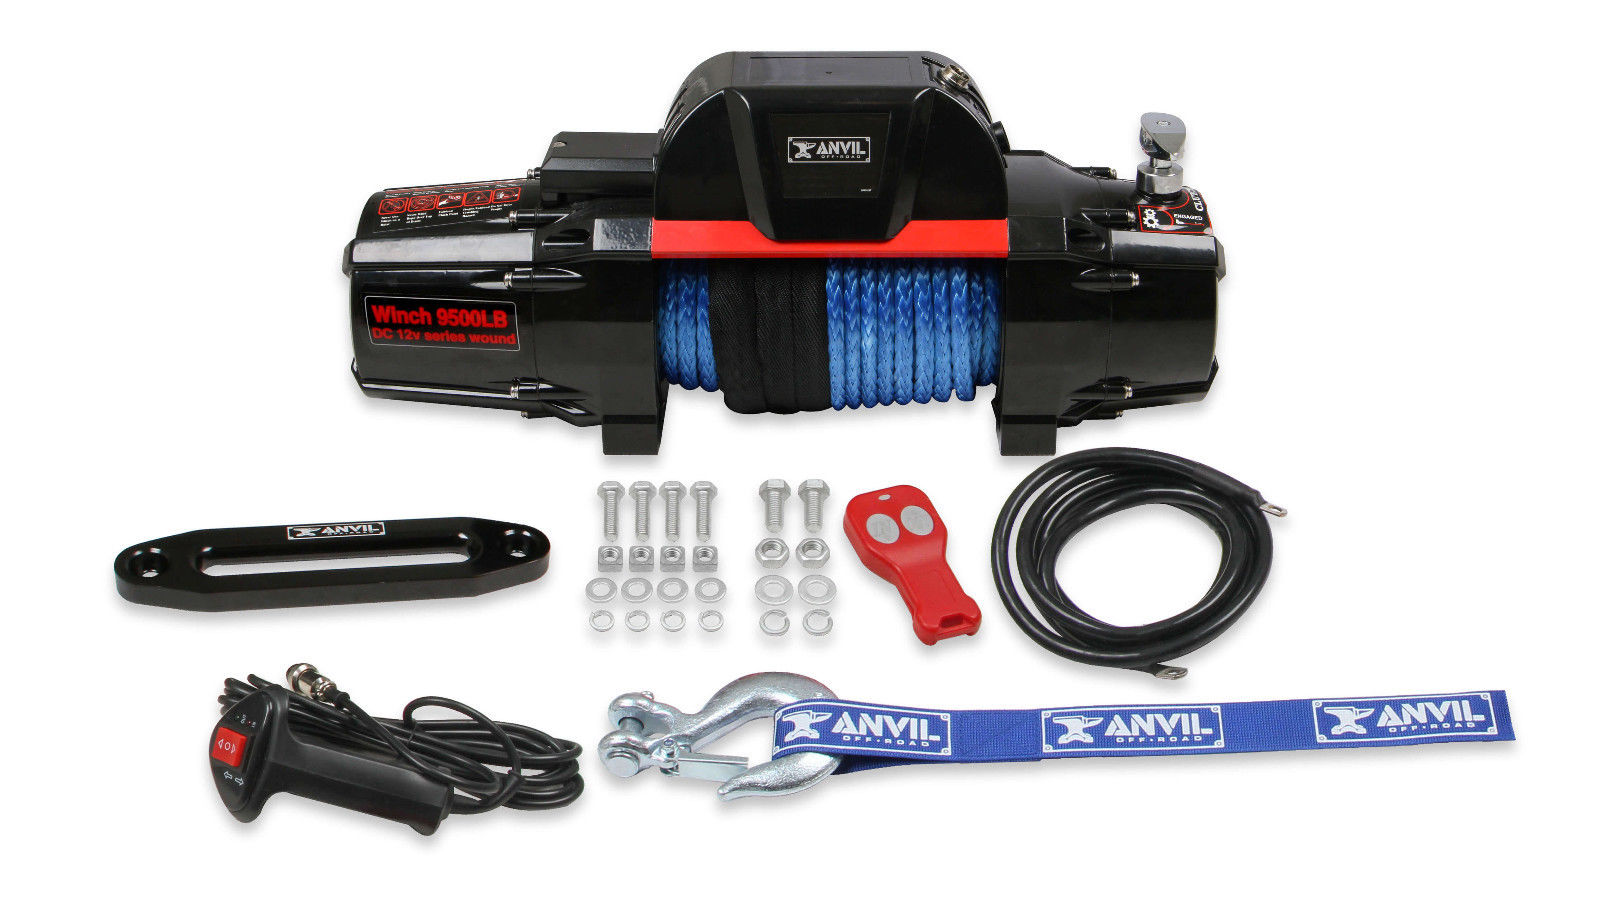 Anvil 9,500 Lbs Winch w/ Synthetic Rope & Aluminum Fairlead 9510AOR